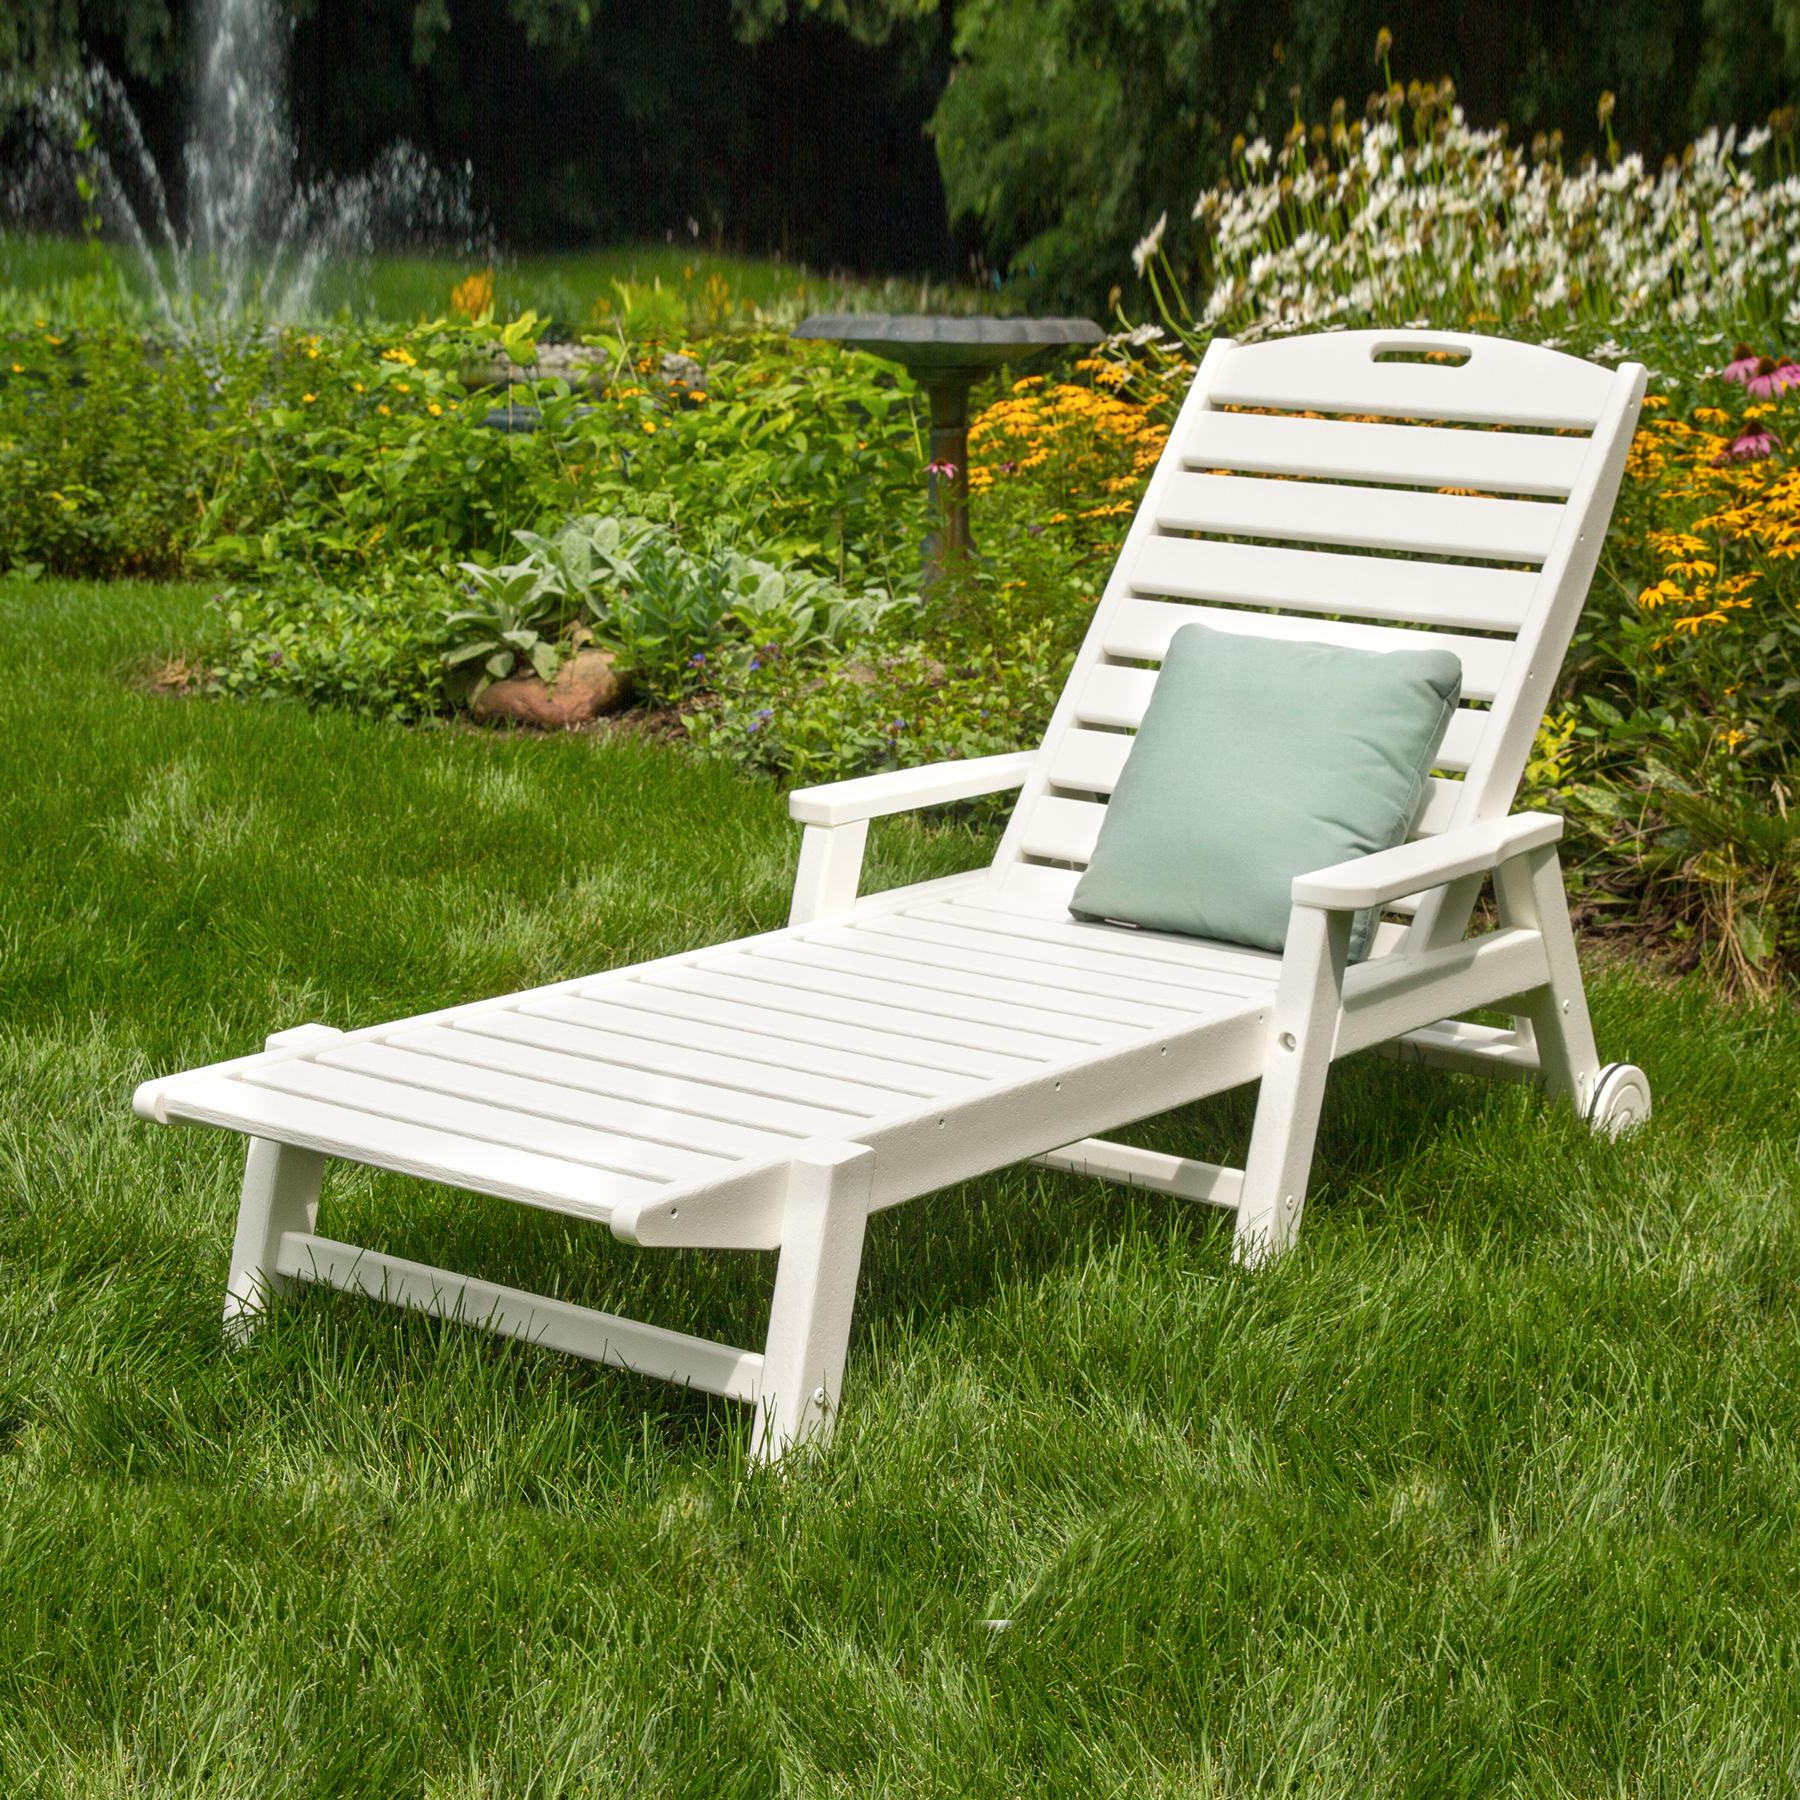 Popular Polywood Nautical Wheeled Chaise Arms Throughout Nautical Outdoor Chaise Lounges With Arms (View 22 of 25)